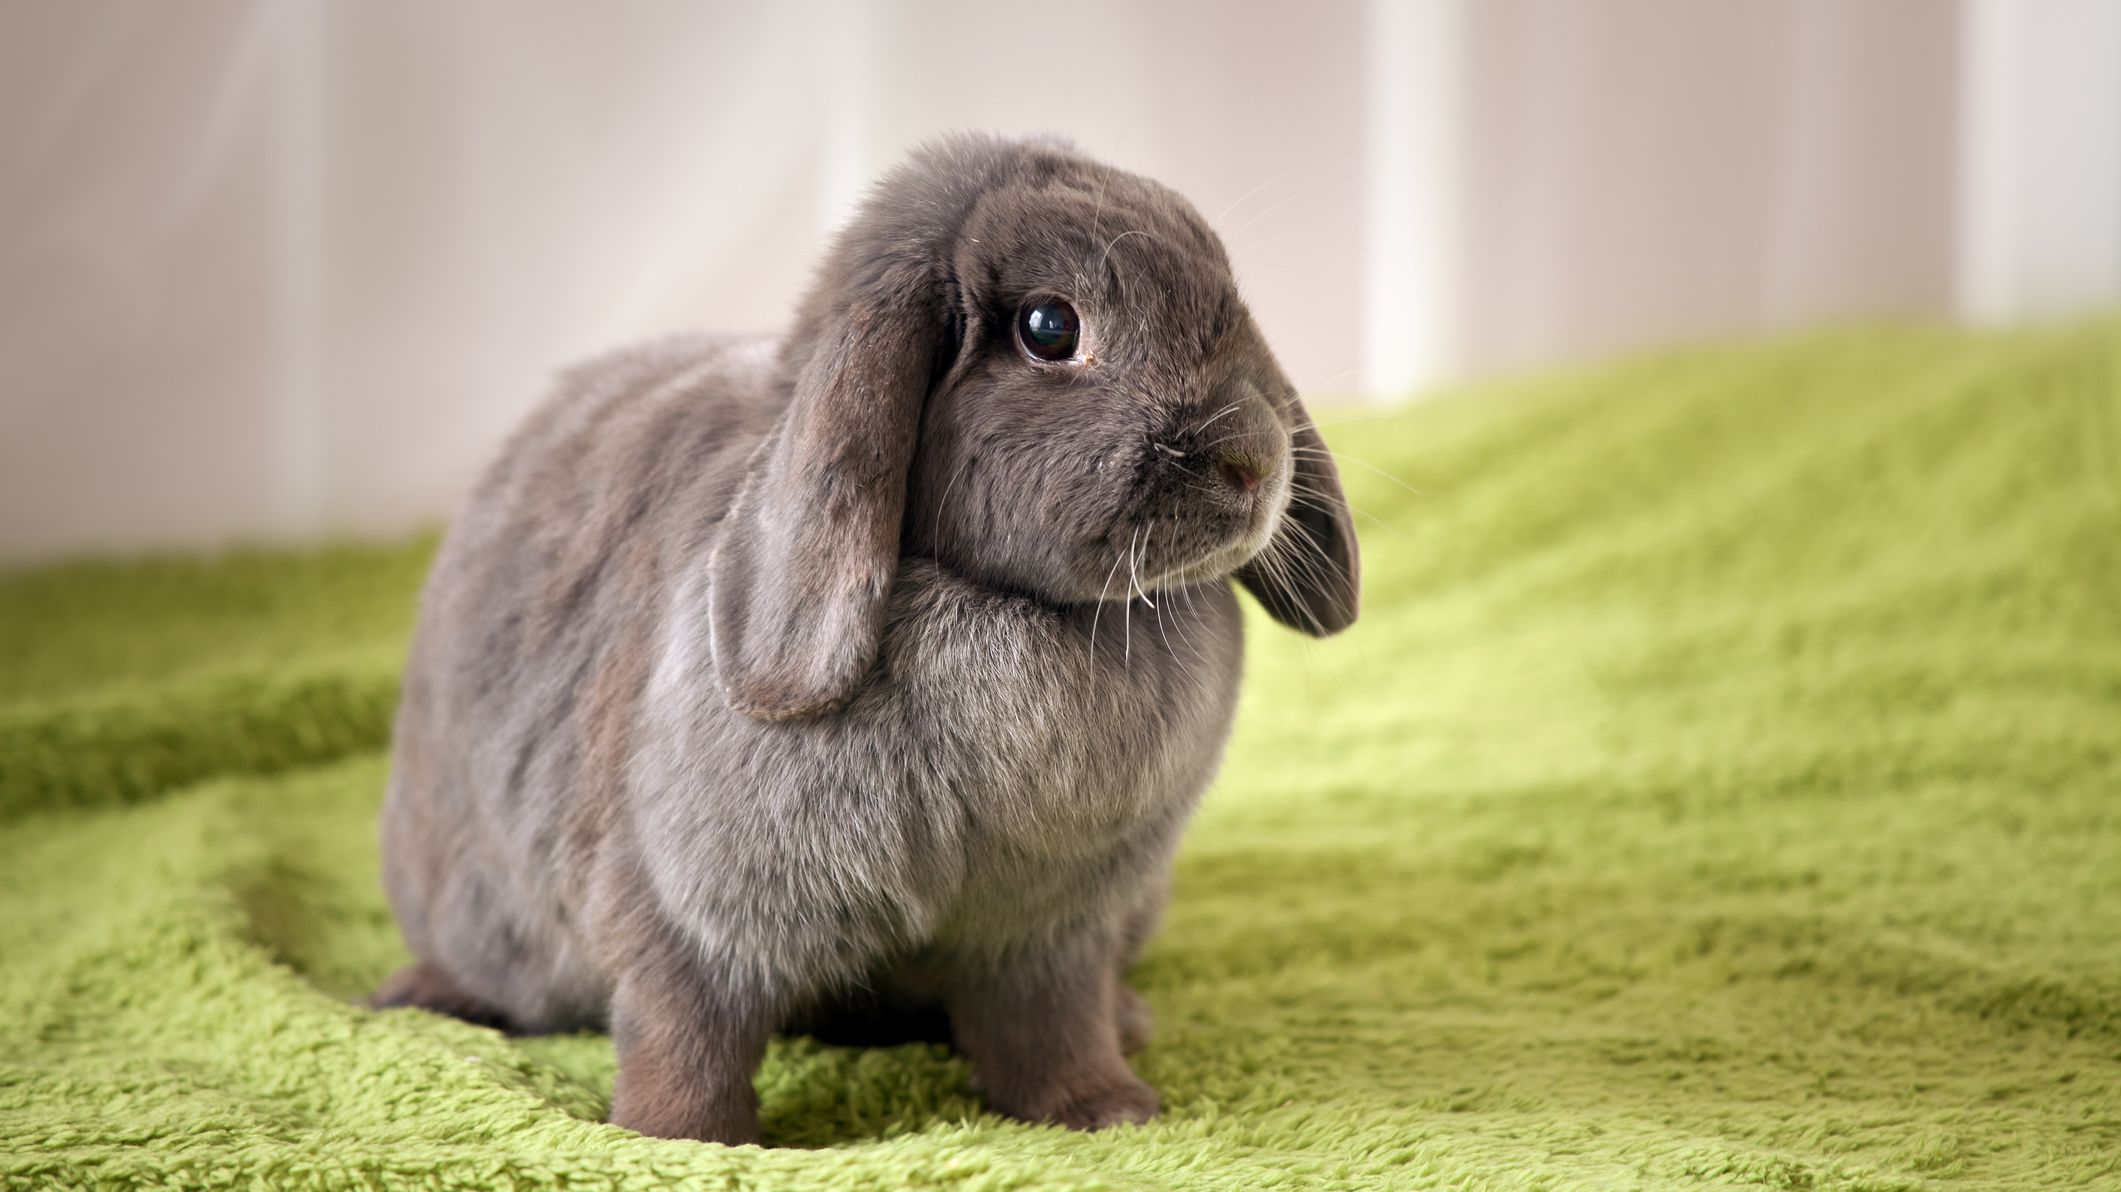 14 Fascinating Facts About Rabbits | Mental Floss